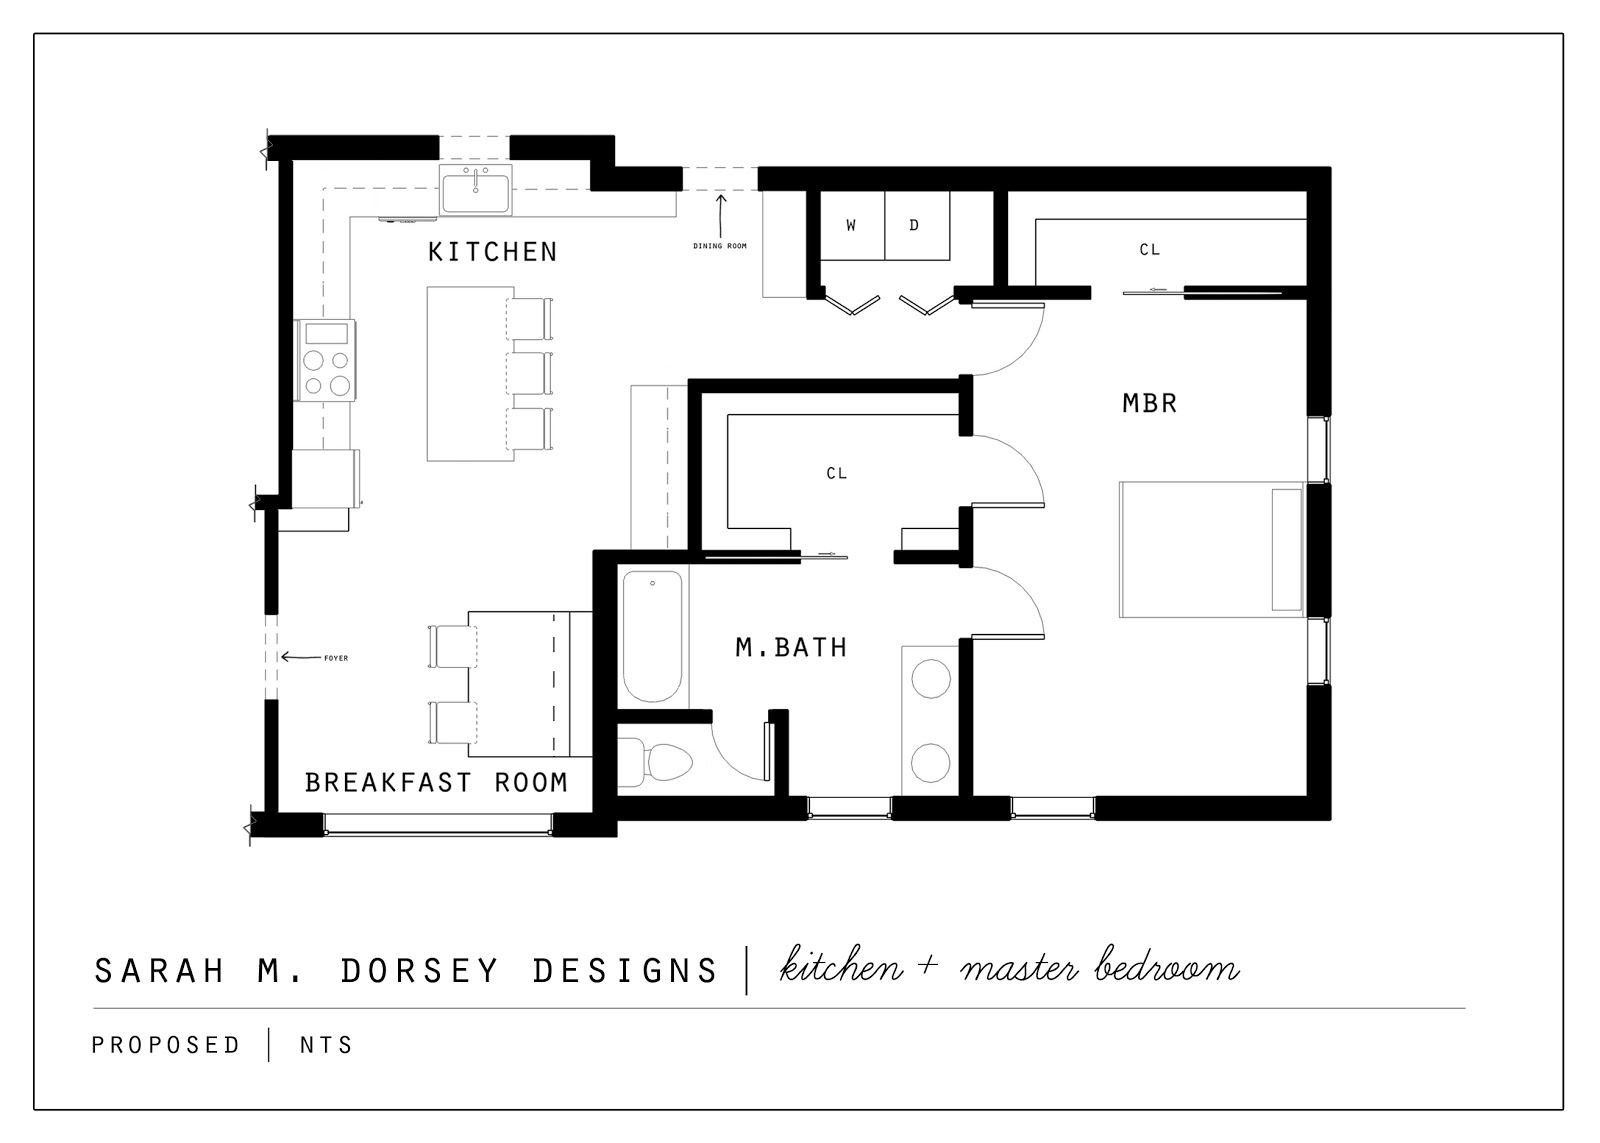 m dorsey designs proposed kitchen and master suite